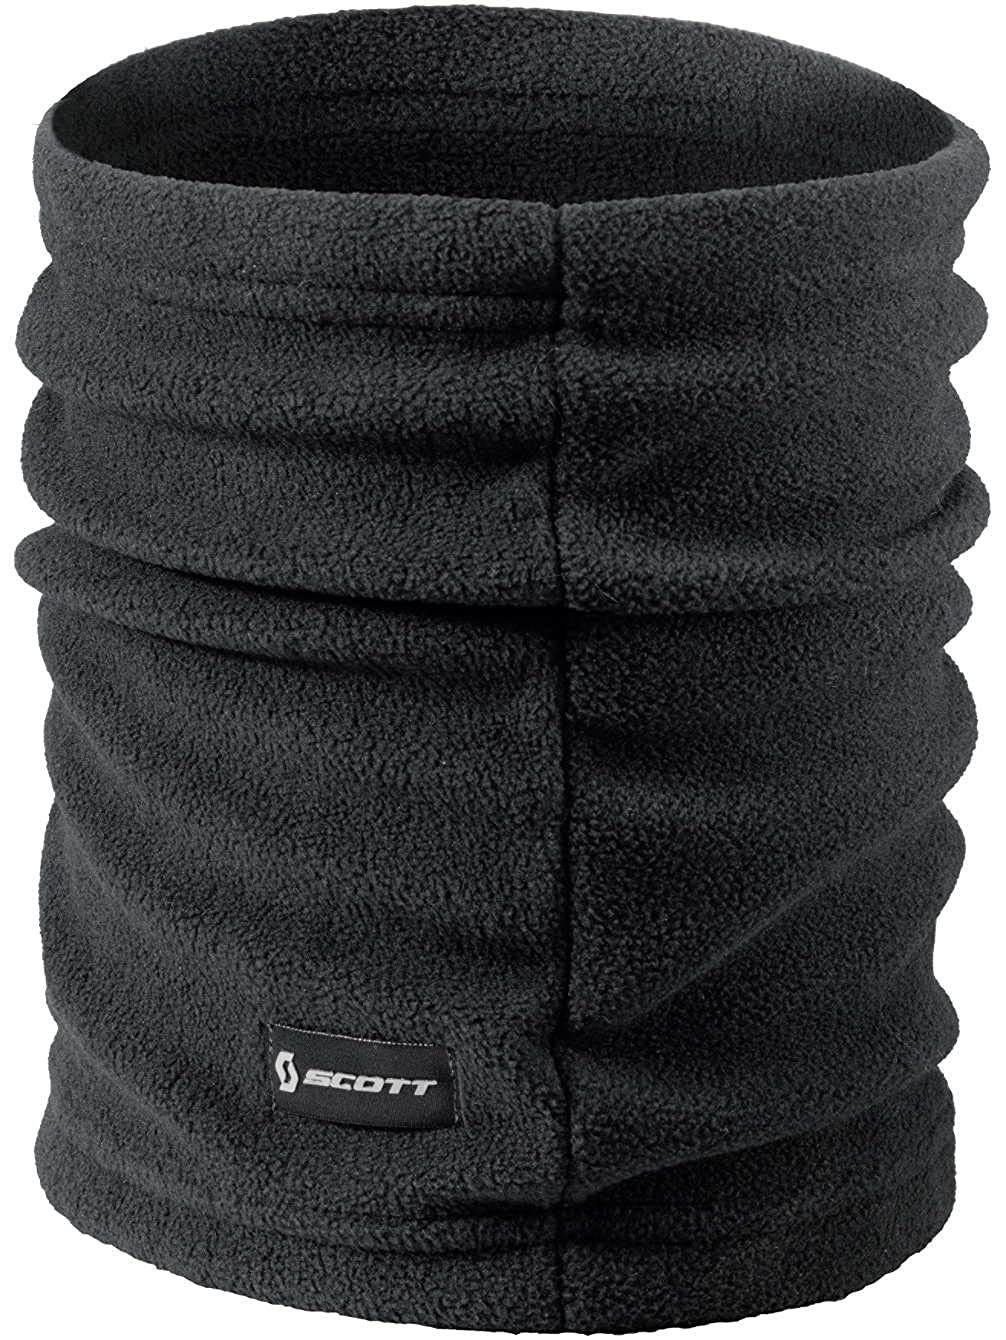 Scott Halswärmer Fleece Schwarz Black One Size SCOUR|#Scott 239842-0001